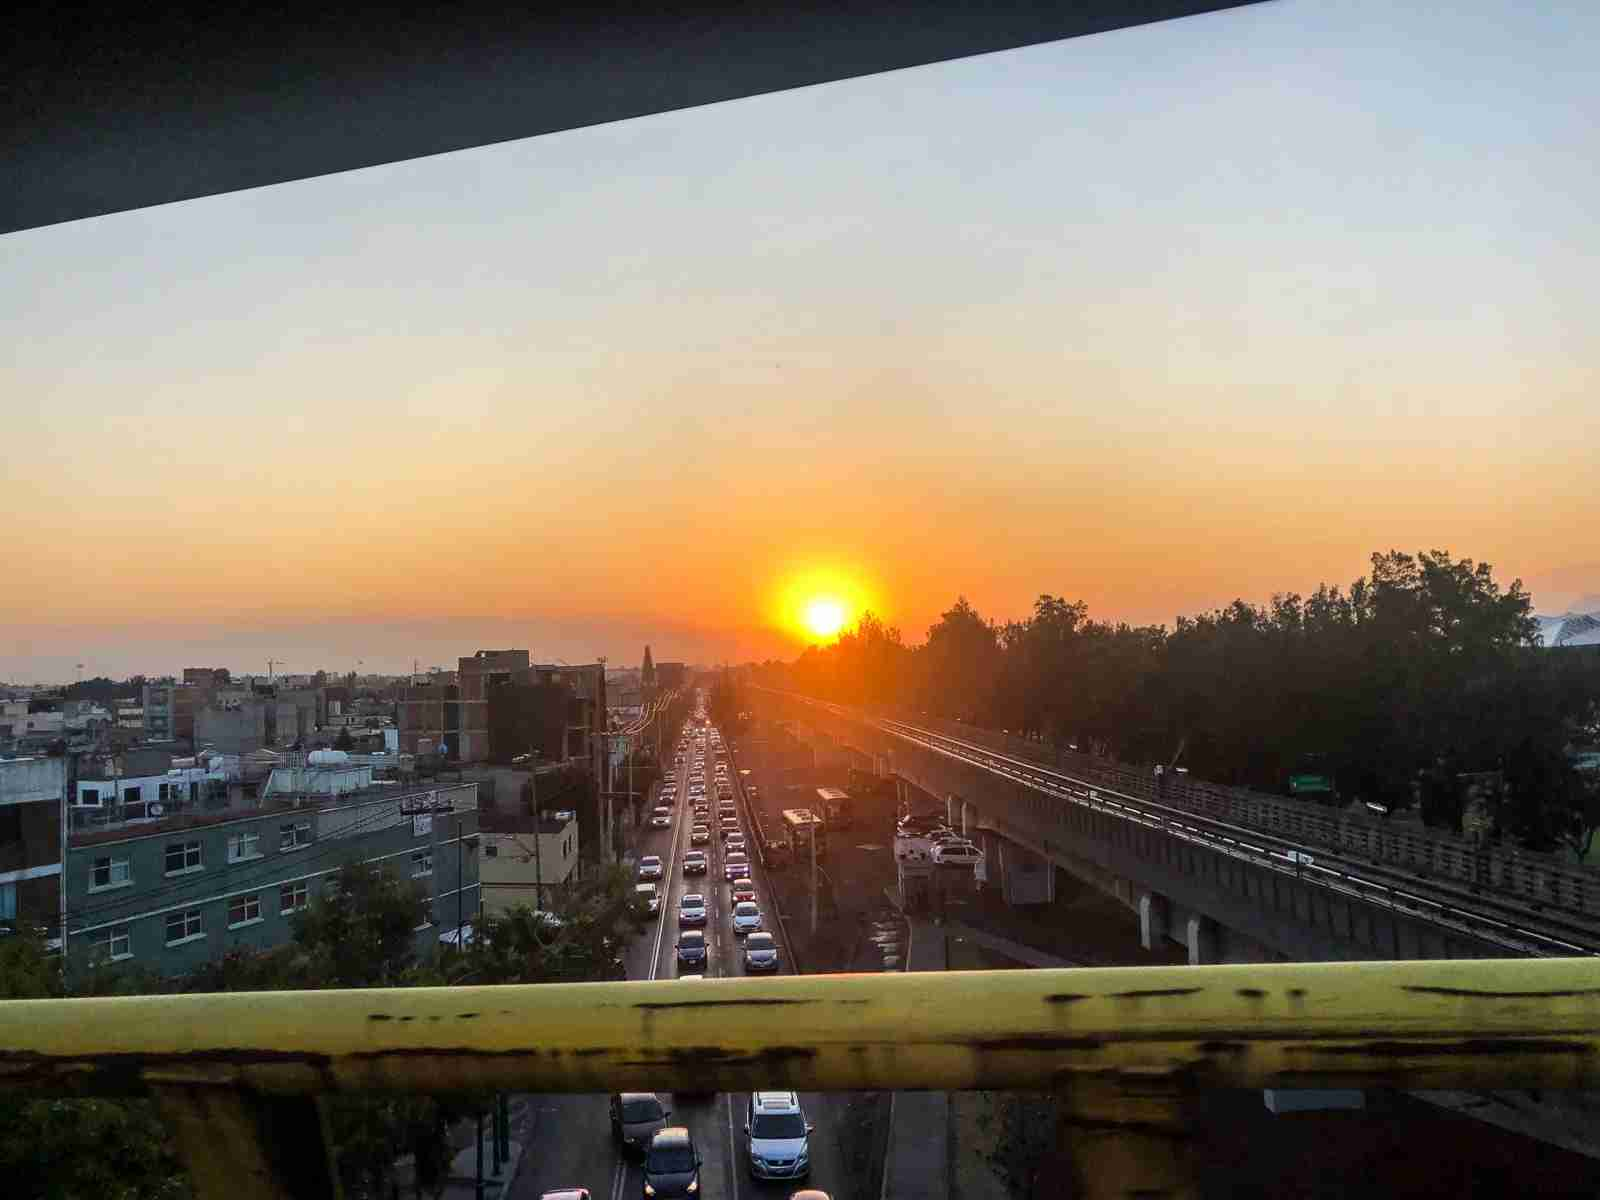 A sunrise over Mexico City. (Photo by Sara Wass/The Points Guy)